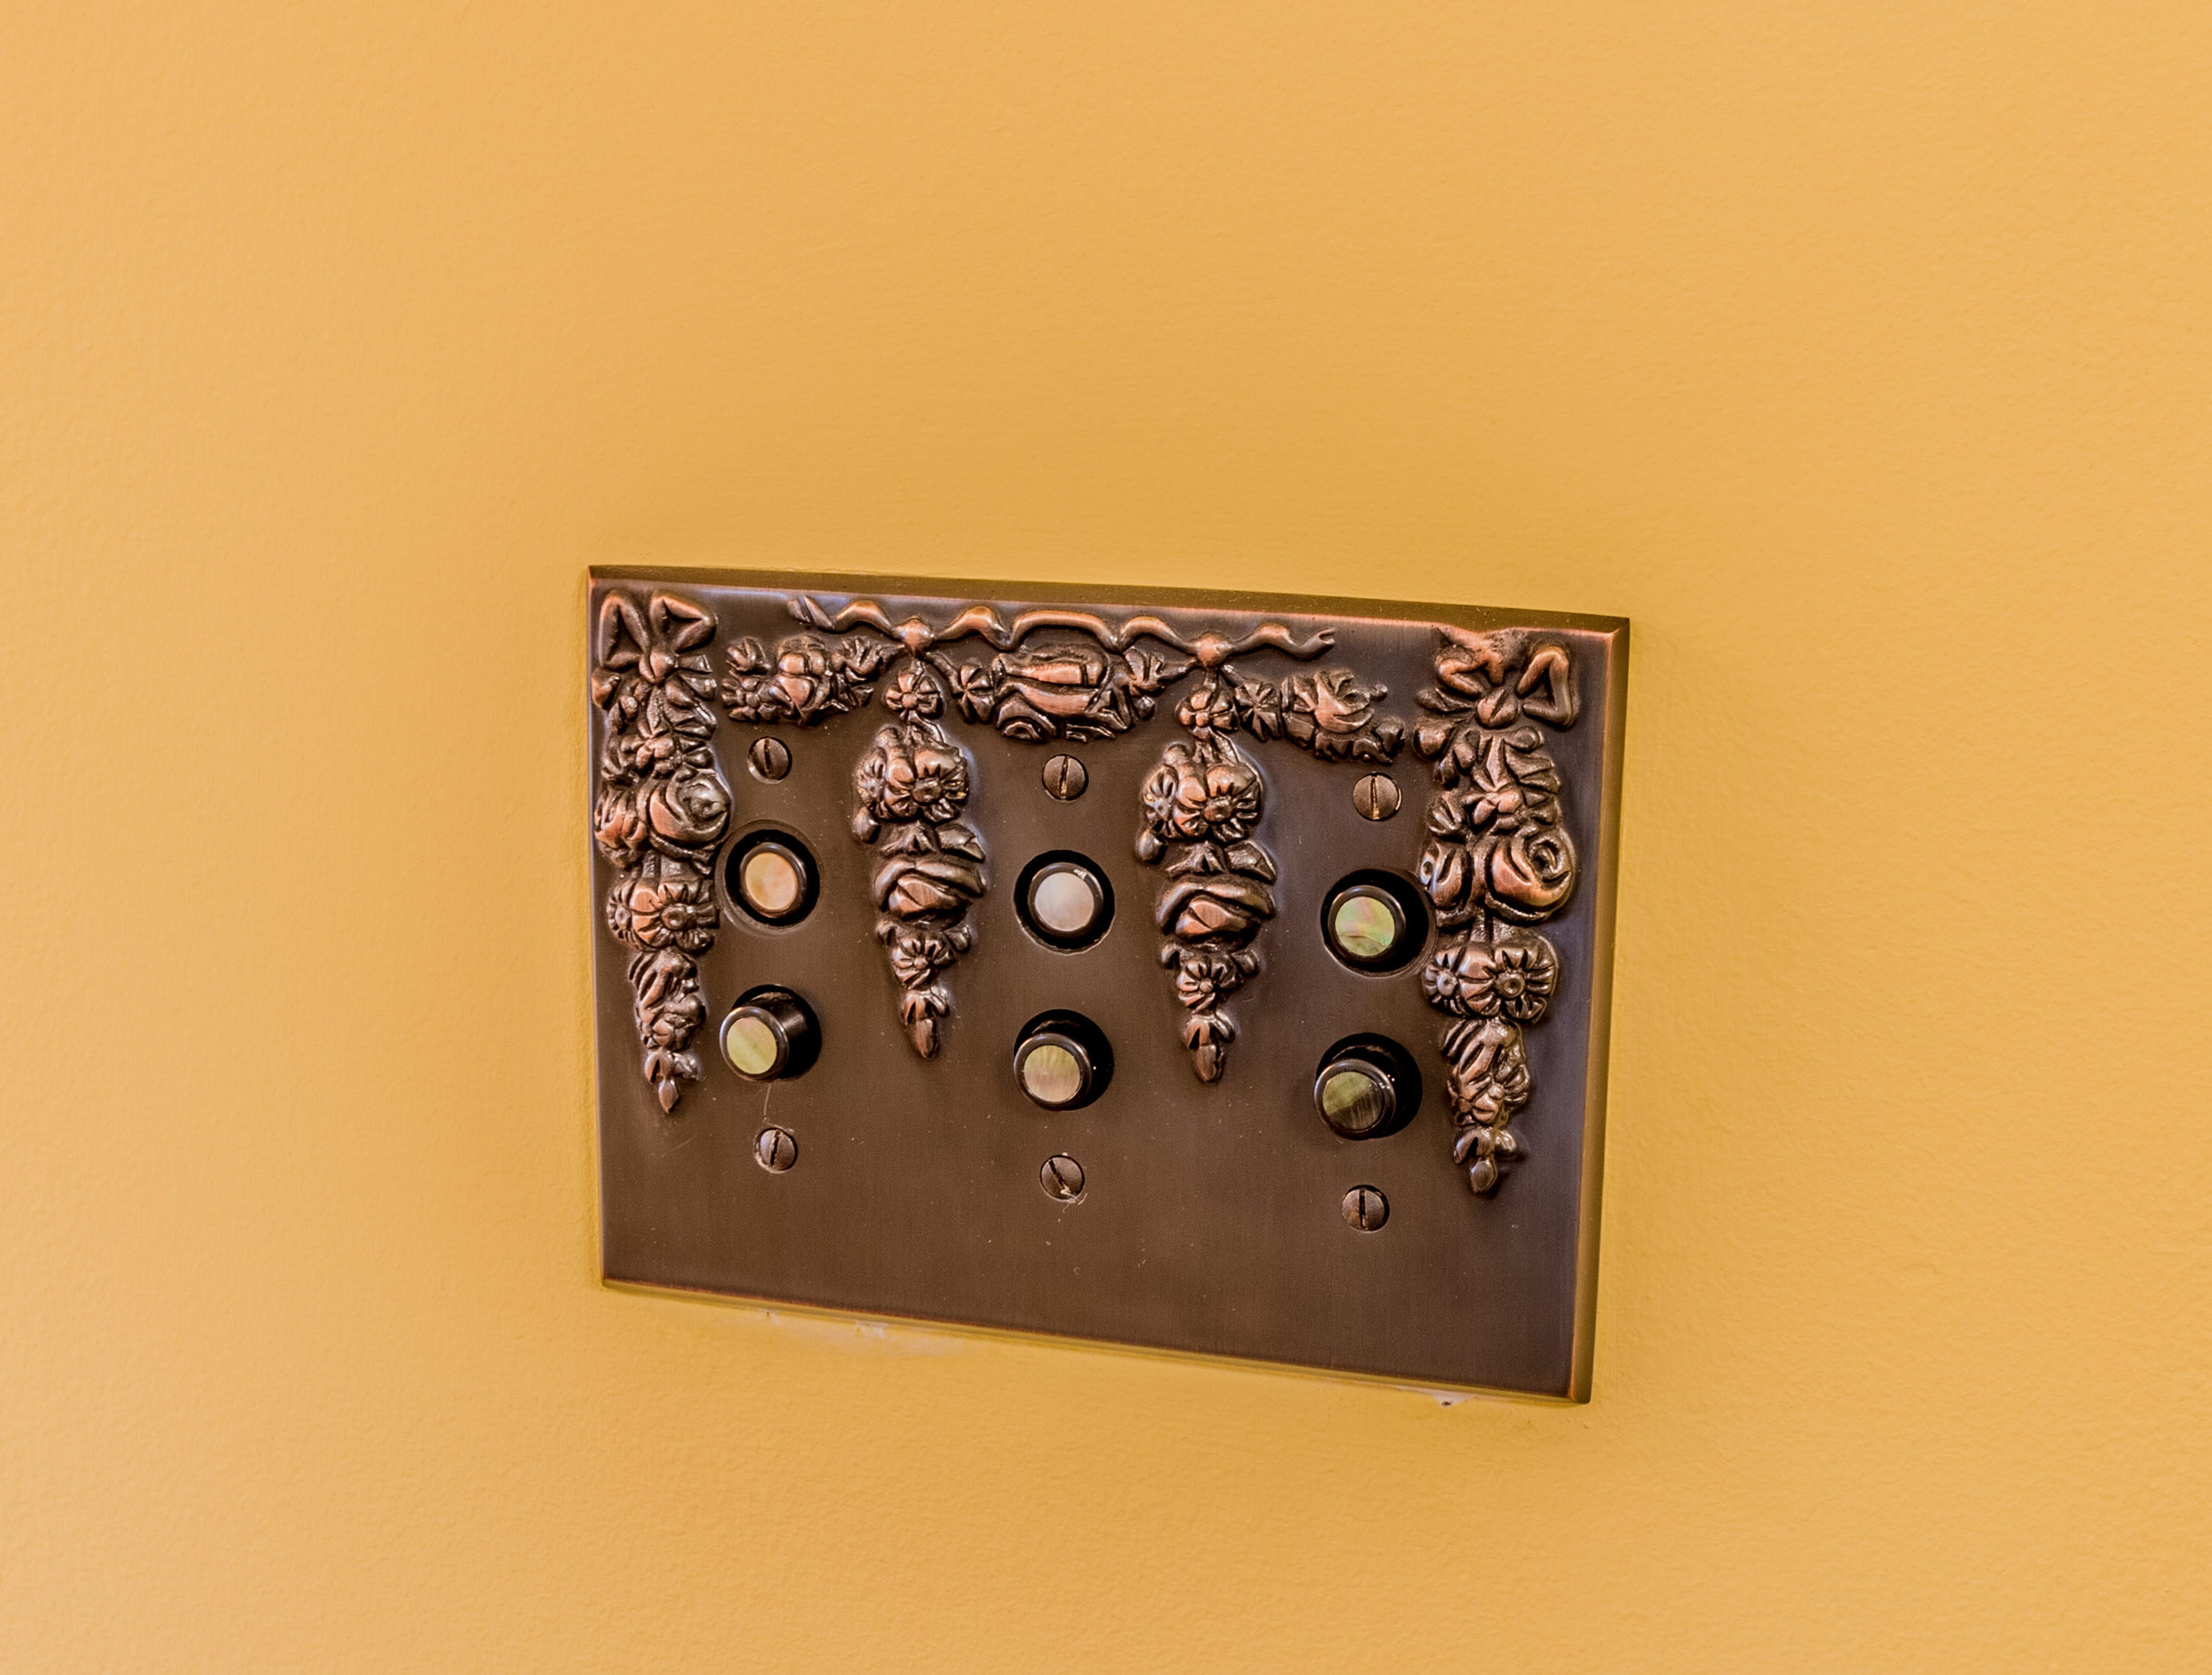 Reproduction light switches contribute to the vintage vibe in the house at 1100 North Rodney St.